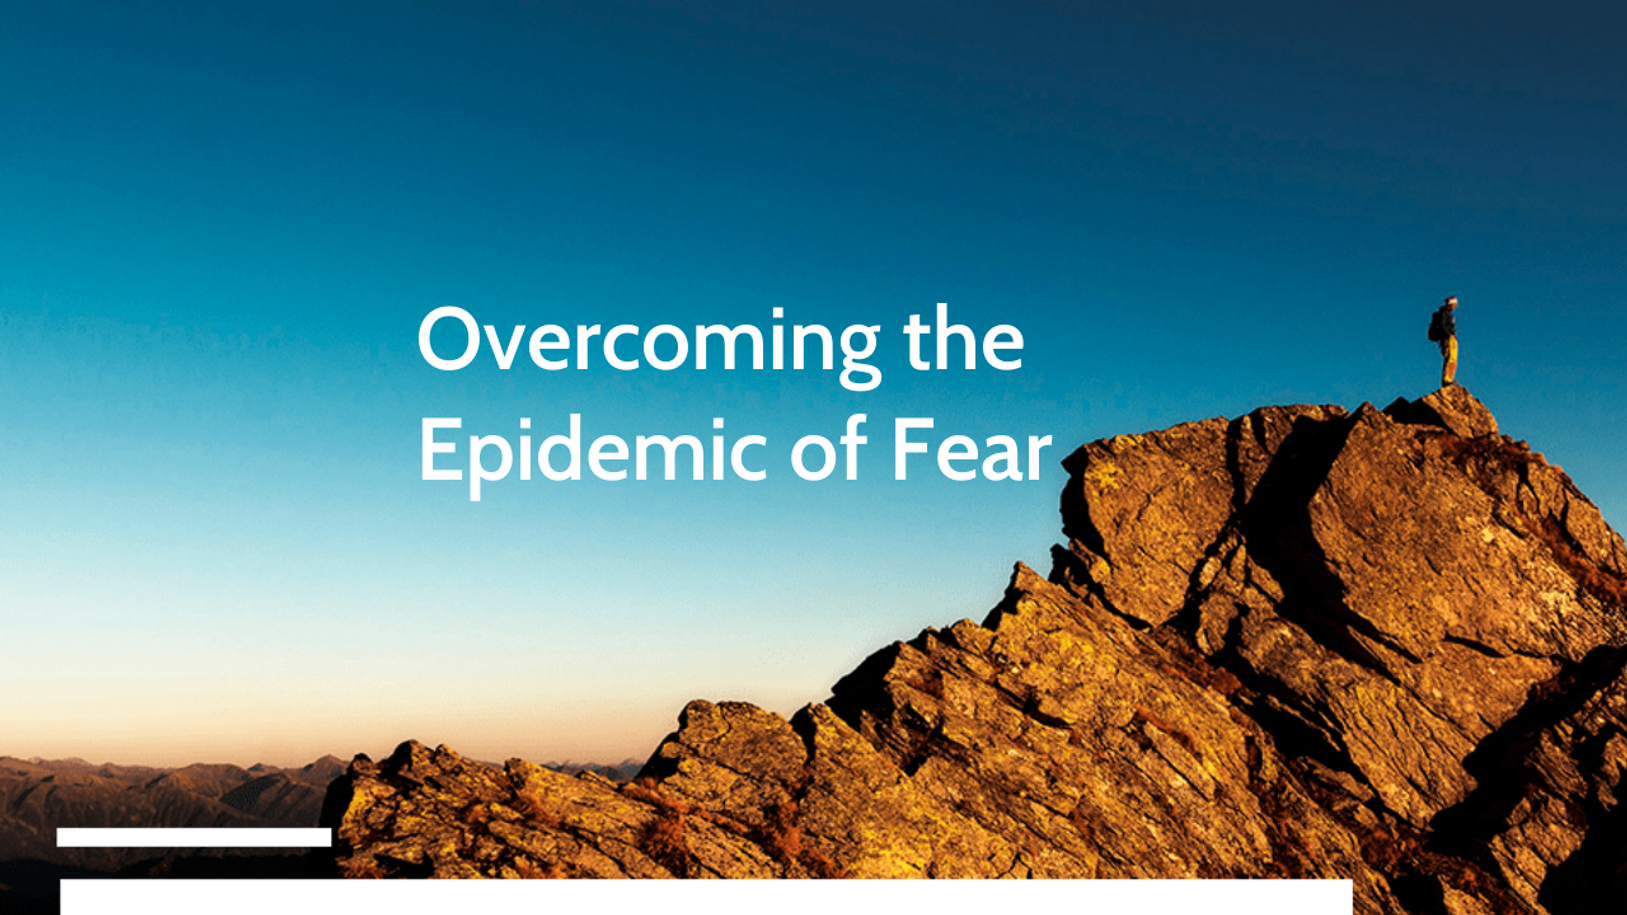 Overcoming the Epidemic of Fear